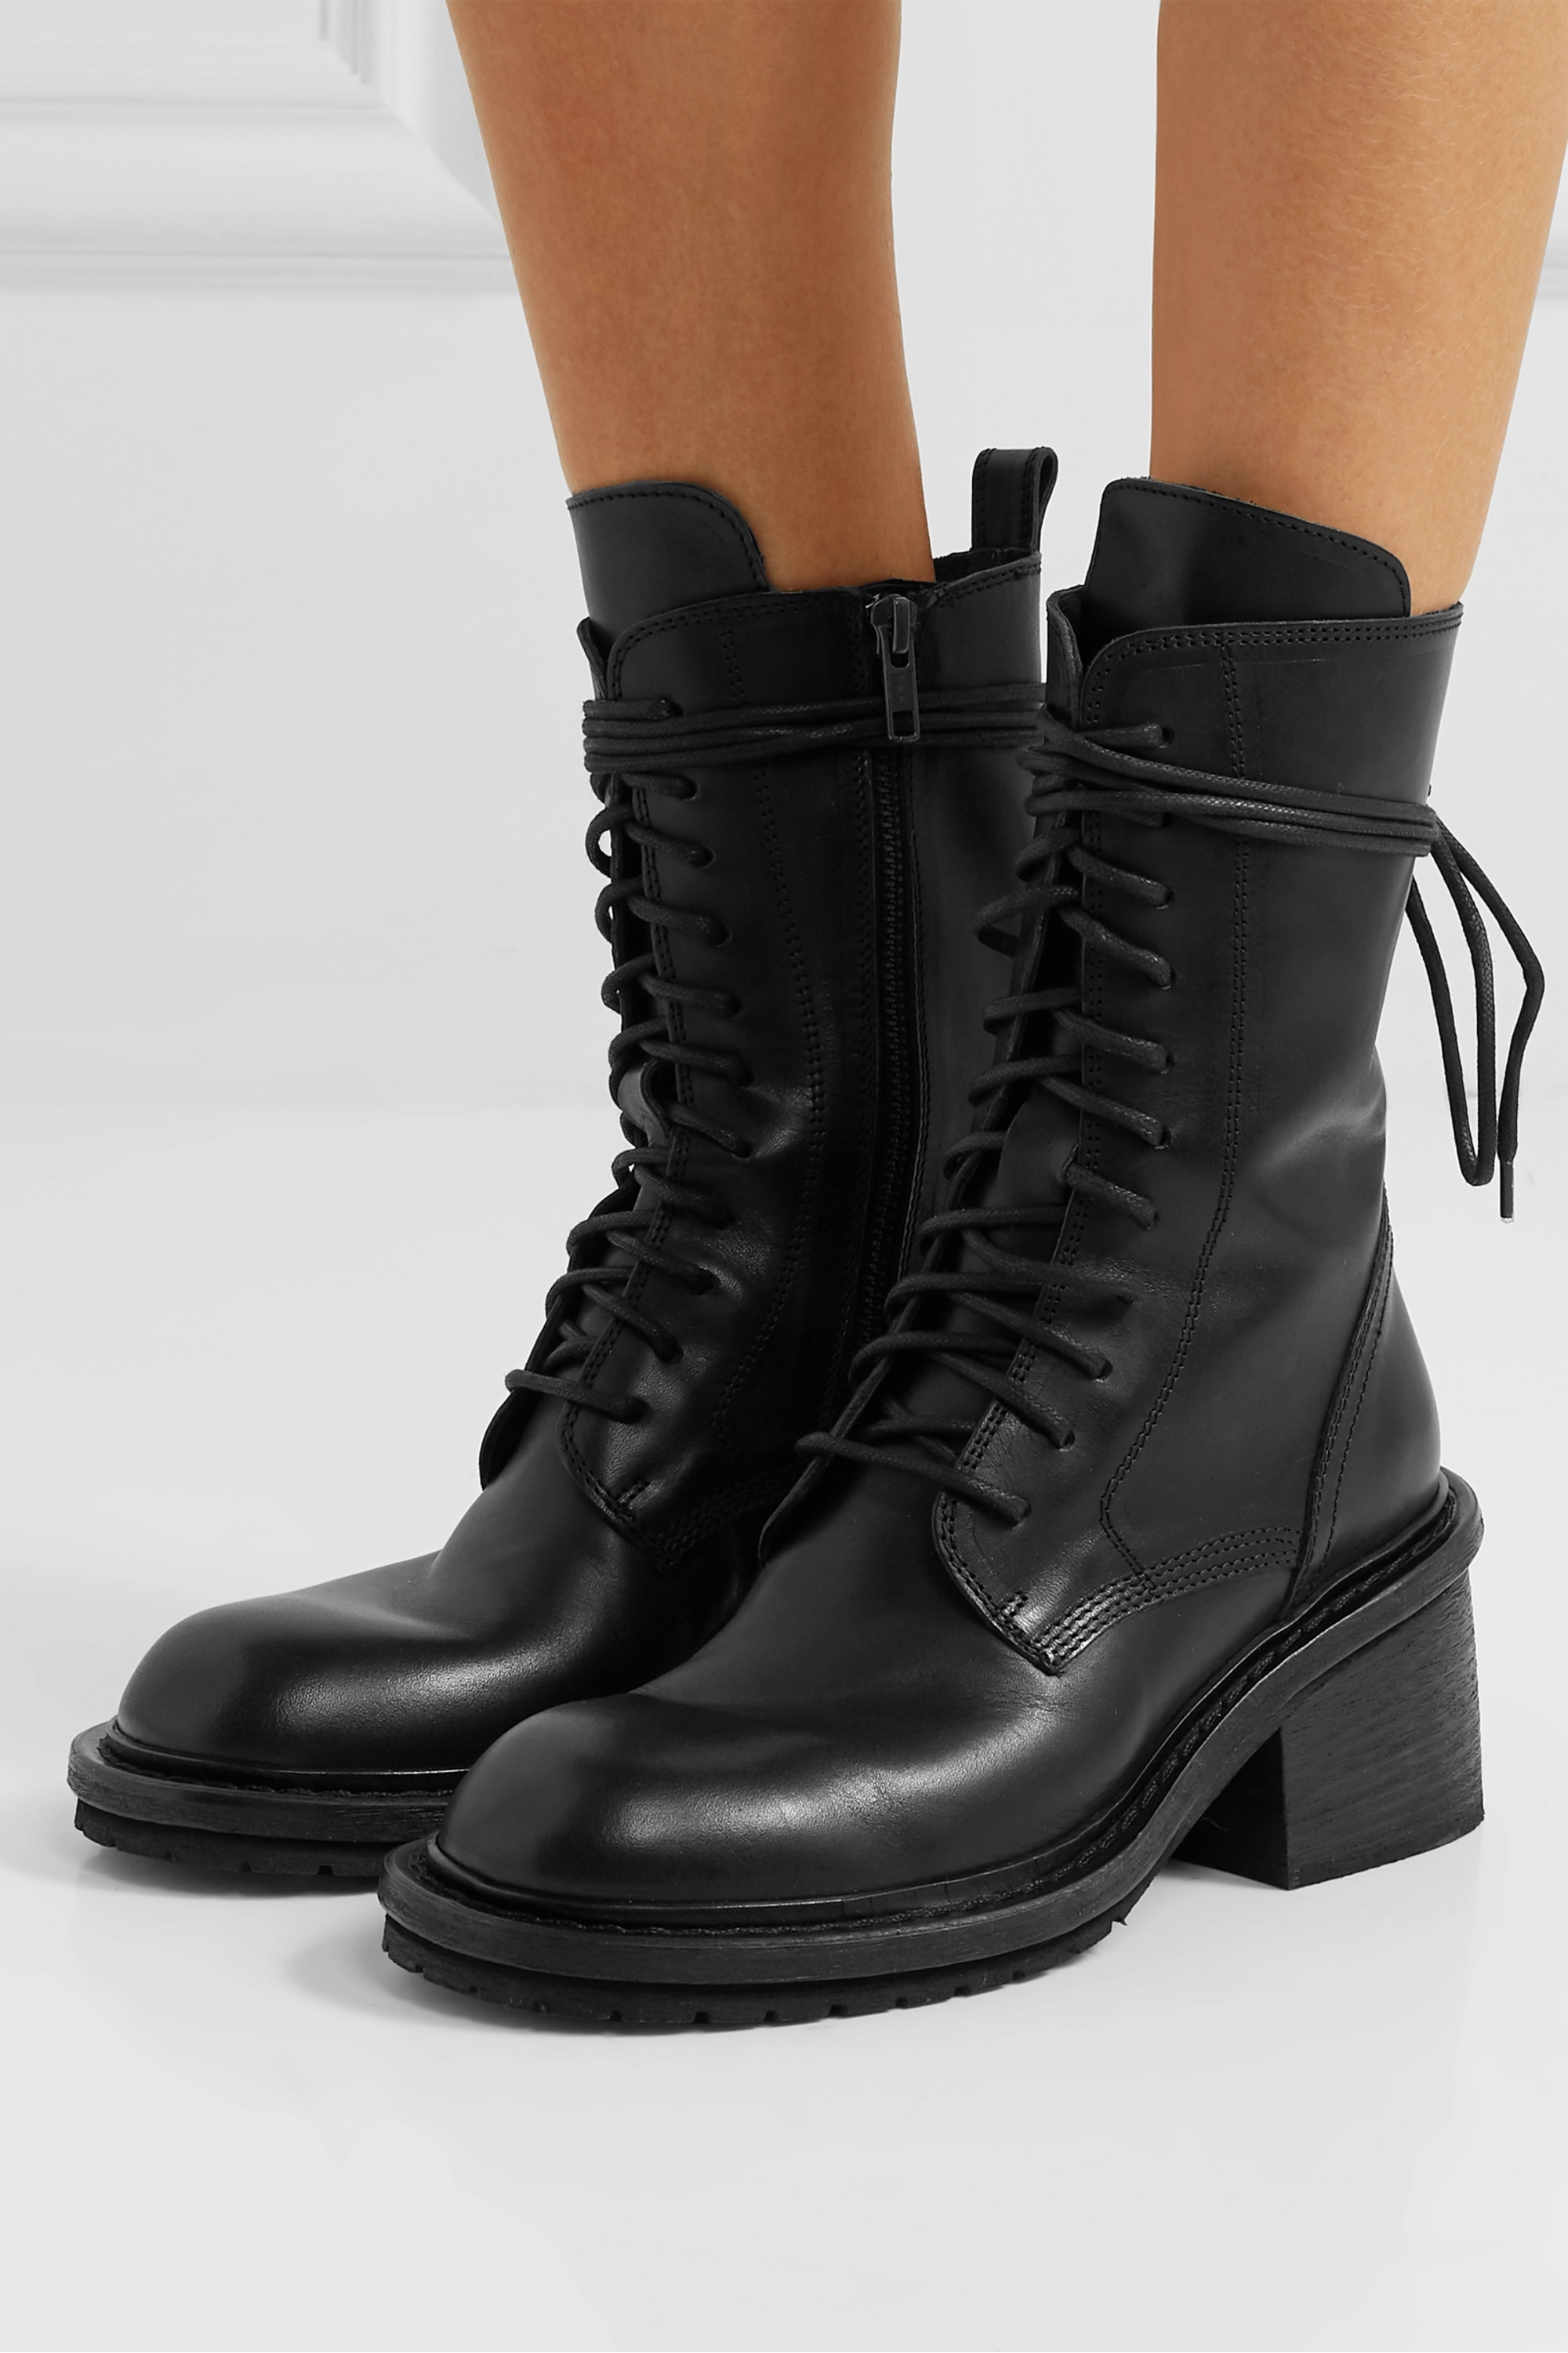 Black Lace-up leather ankle boots | Ann